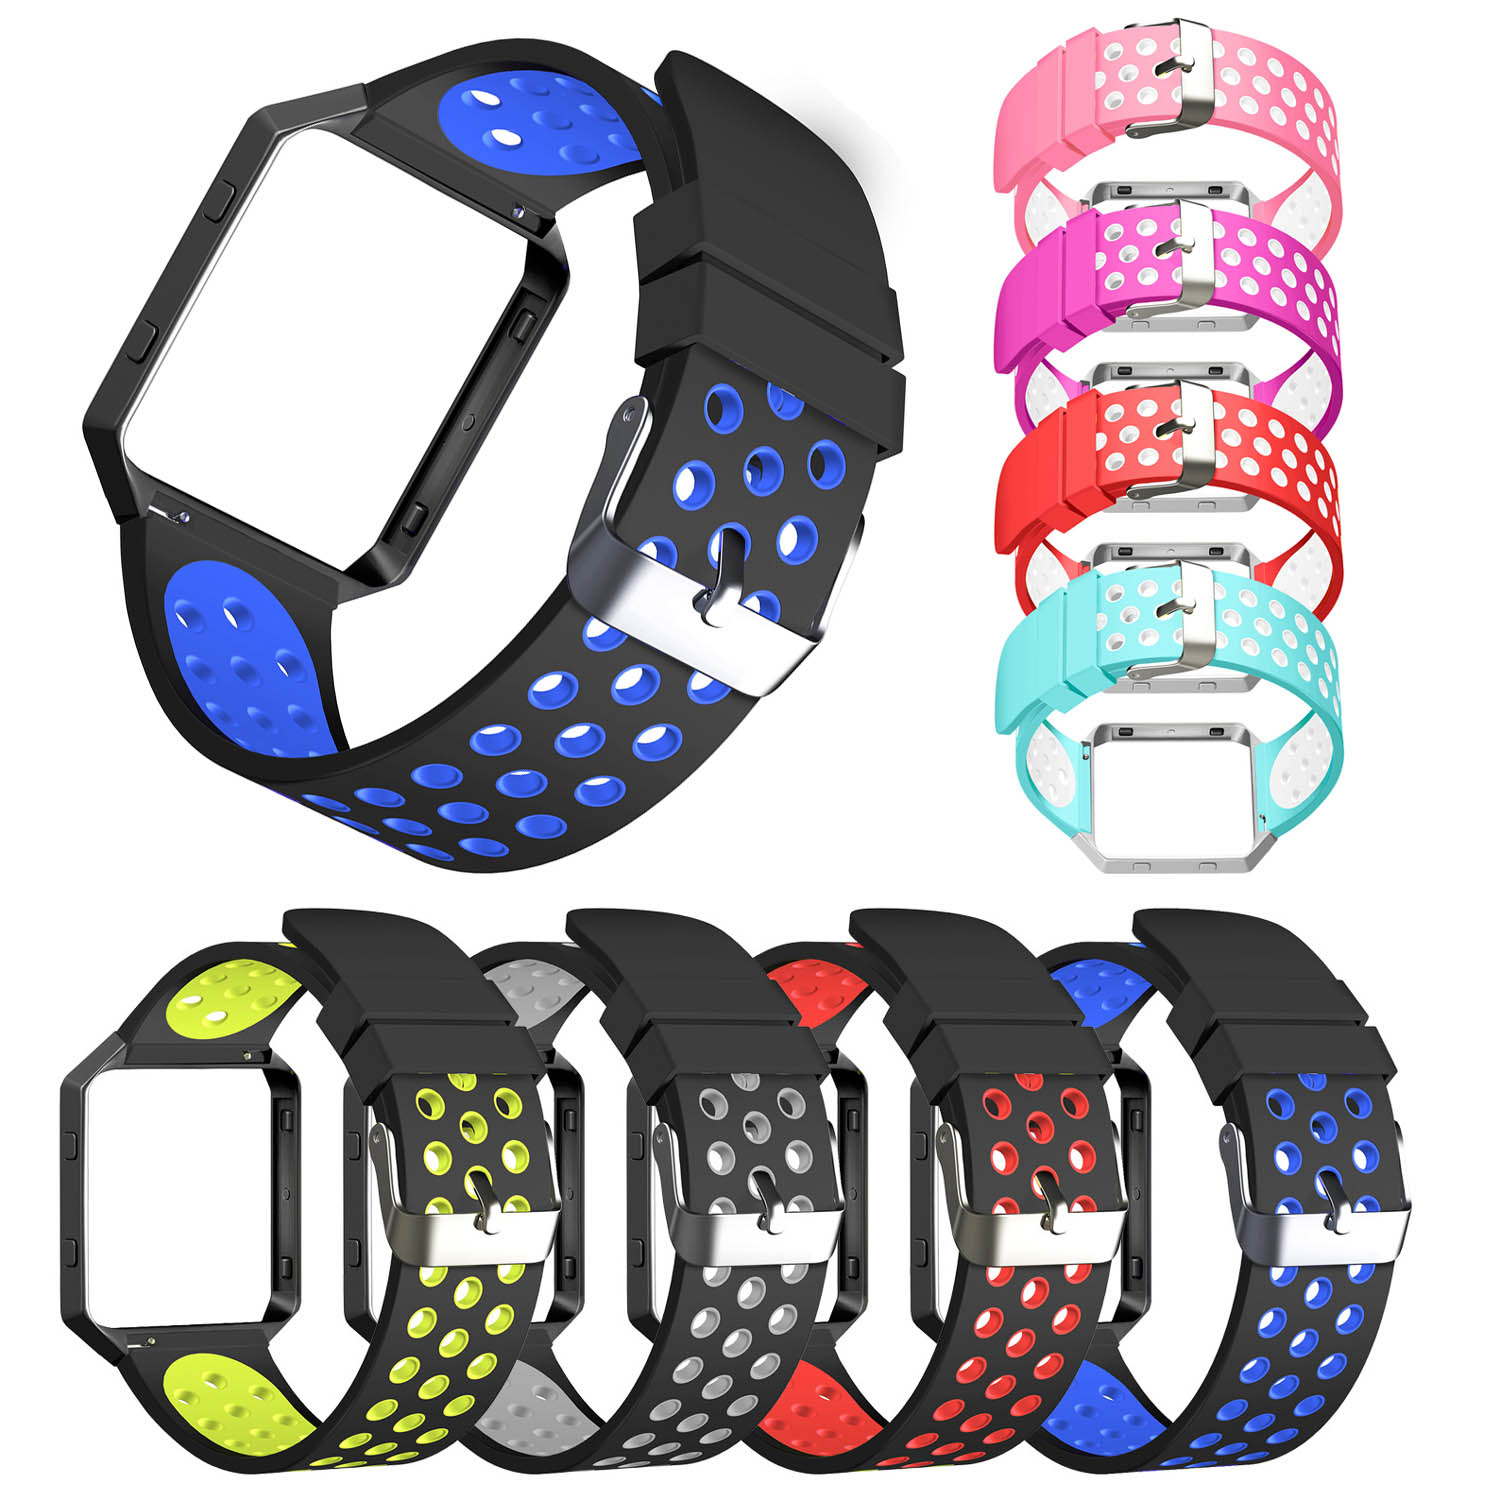 10 Colors Replacement Watch Strap For Fitbit Blaze Bands Sport Soft Silicone For Fitbit Blaze Smart Fitness Watch With Frame цена и фото